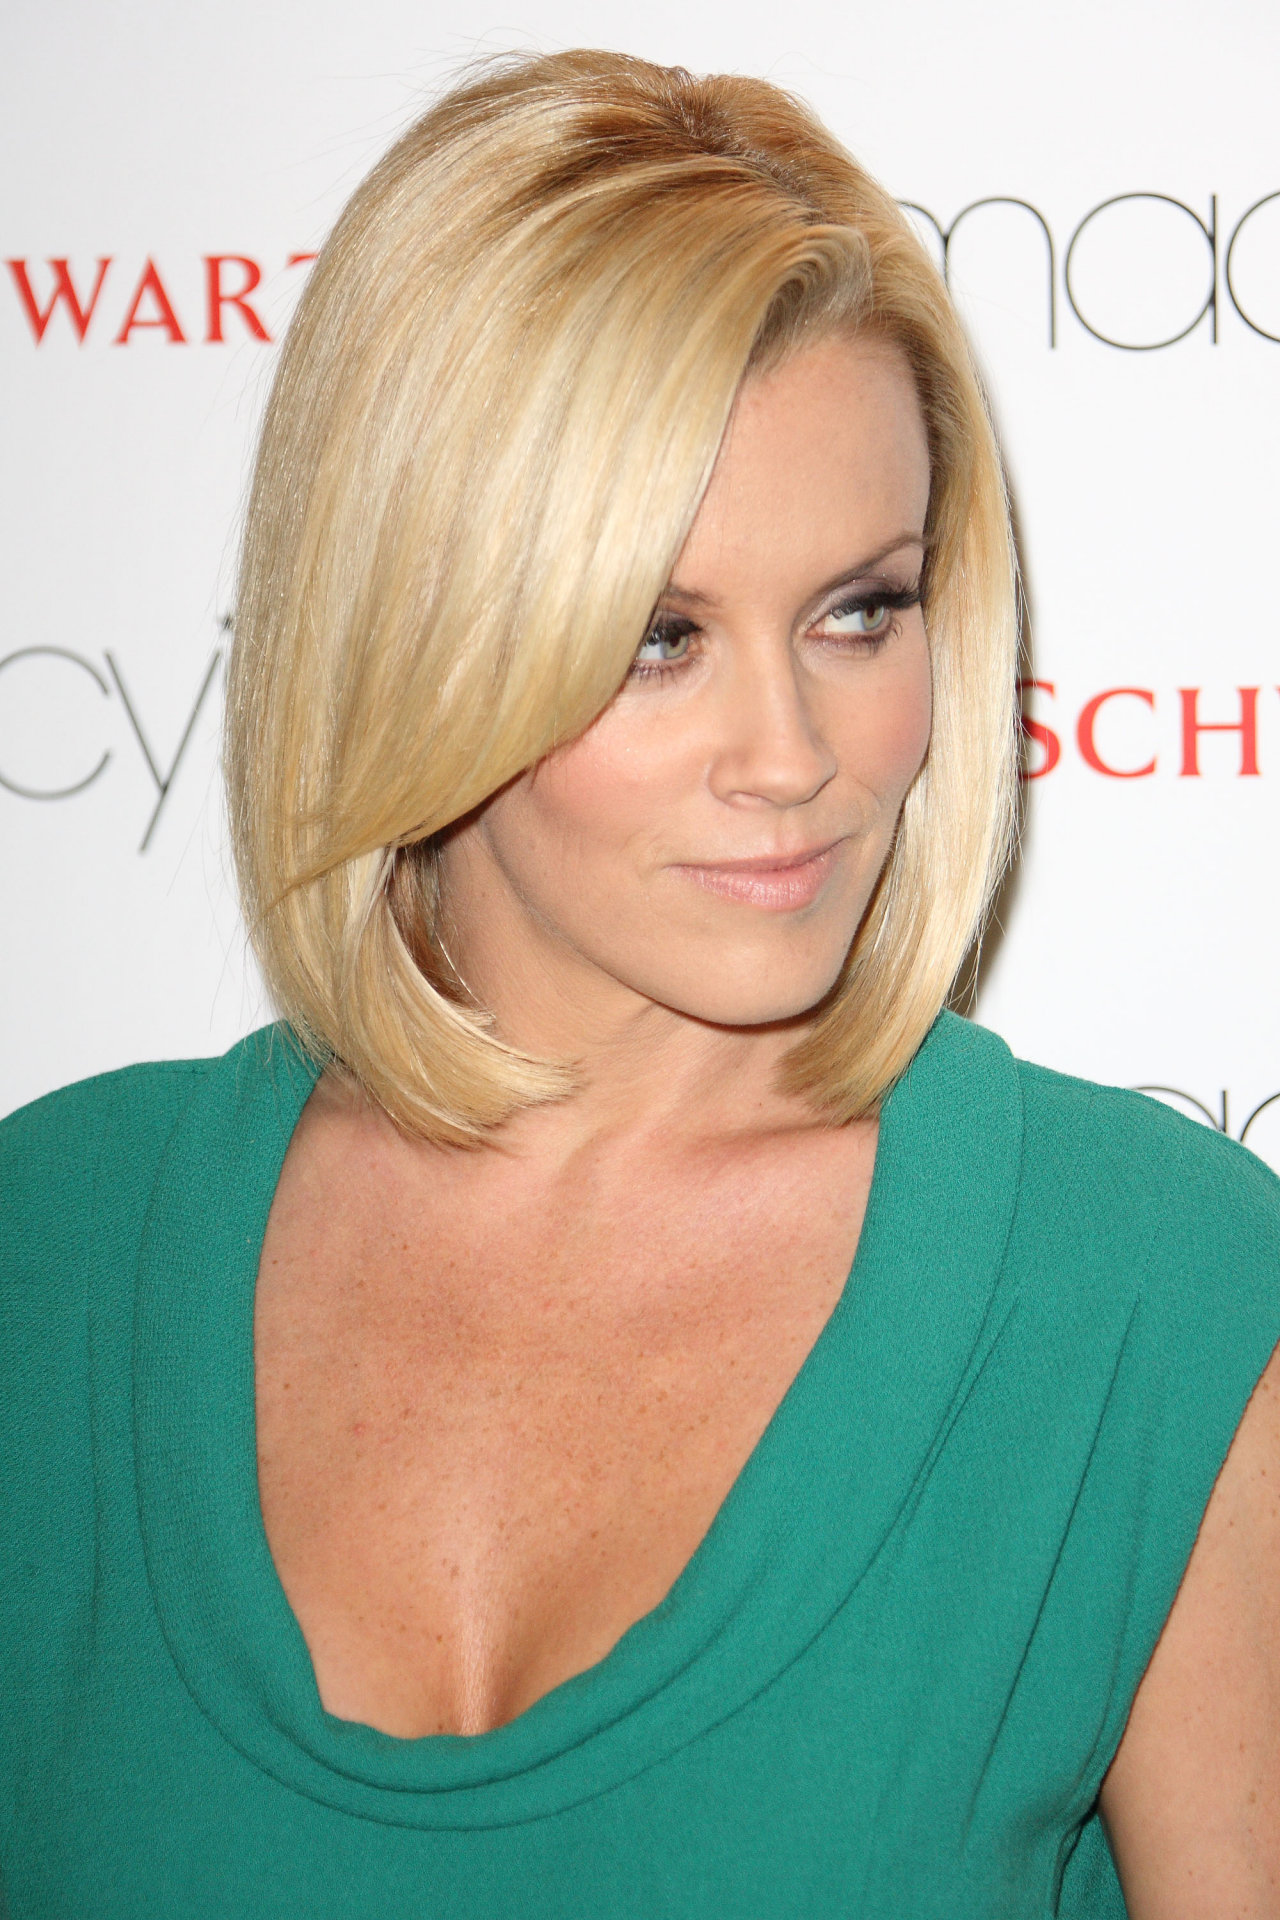 Jenny mccarthy wallpapers 73684 top rated jenny mccarthy photos